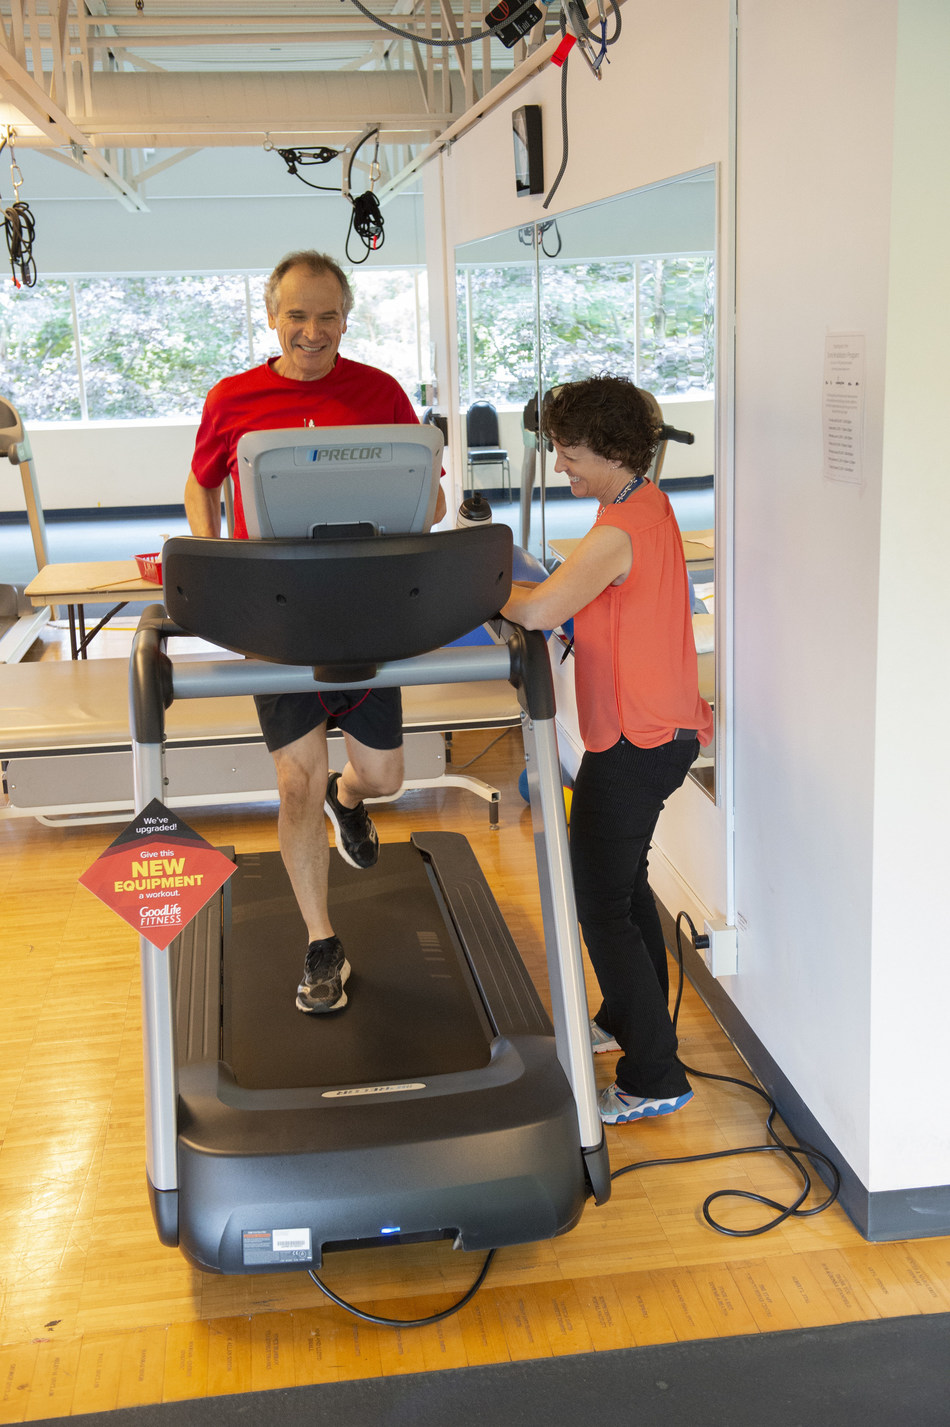 Valerie Skeffington, program manager of PMCC's Cardiovascular Prevention and Rehabilitation Program at UHN, checks in with patient Tony Cesta as he does his cardio workout on a new treadmill at Toronto Rehab's Rumsey Centre. New treadmills, upright and exercise bikes and elliptical machines, worth $330,000, will upgrade the fitness facilities at two UHN cardiac rehabilitation facilities – helping patients connect with physical activity as part of their recovery. (CNW Group/GoodLife Fitness)